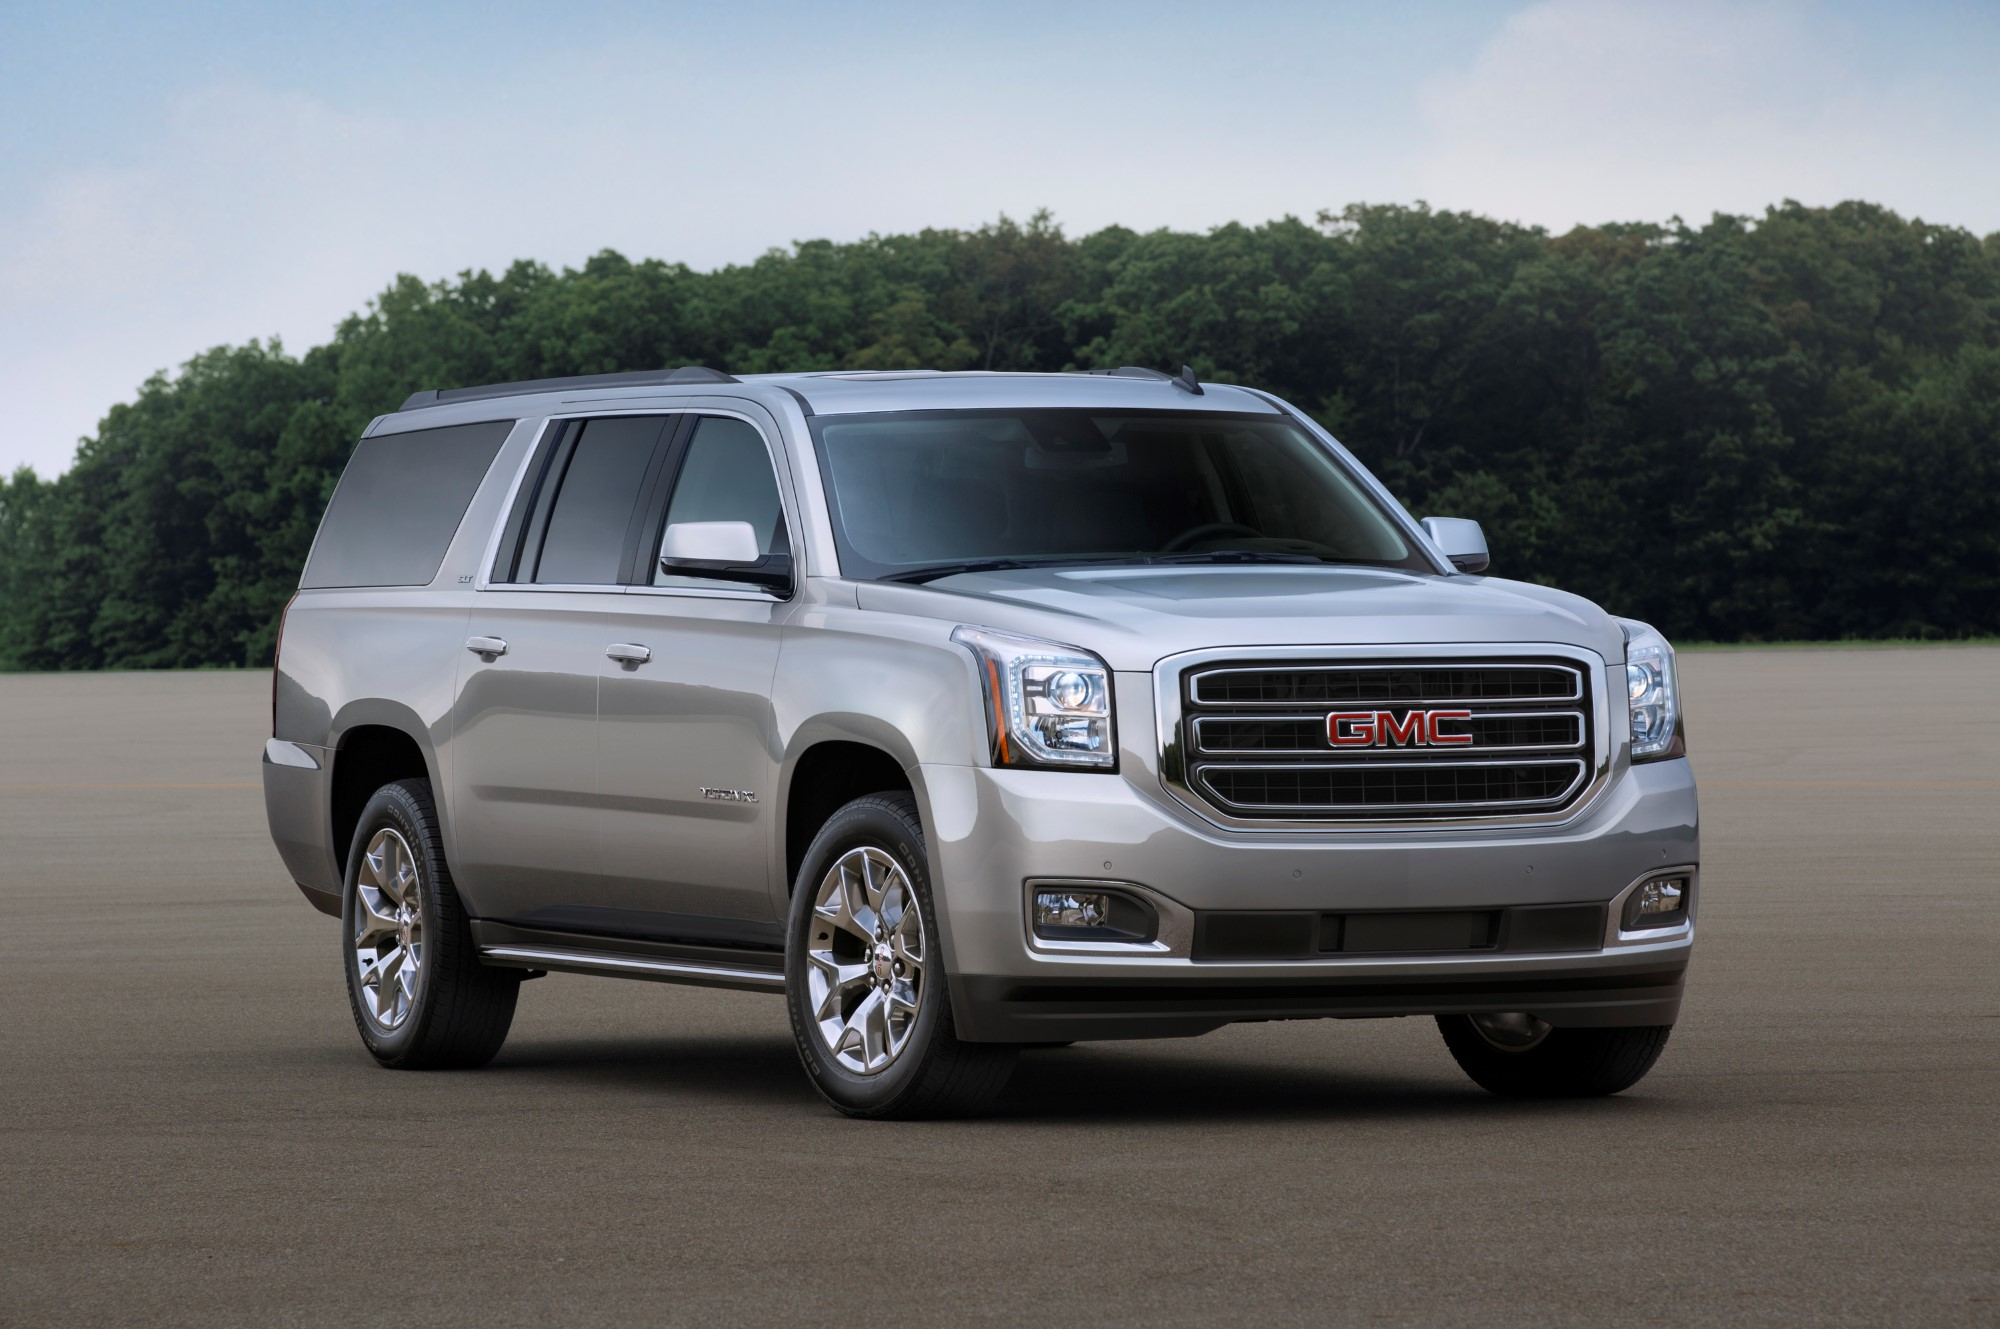 gmc yukon (gmt800) 2001 images